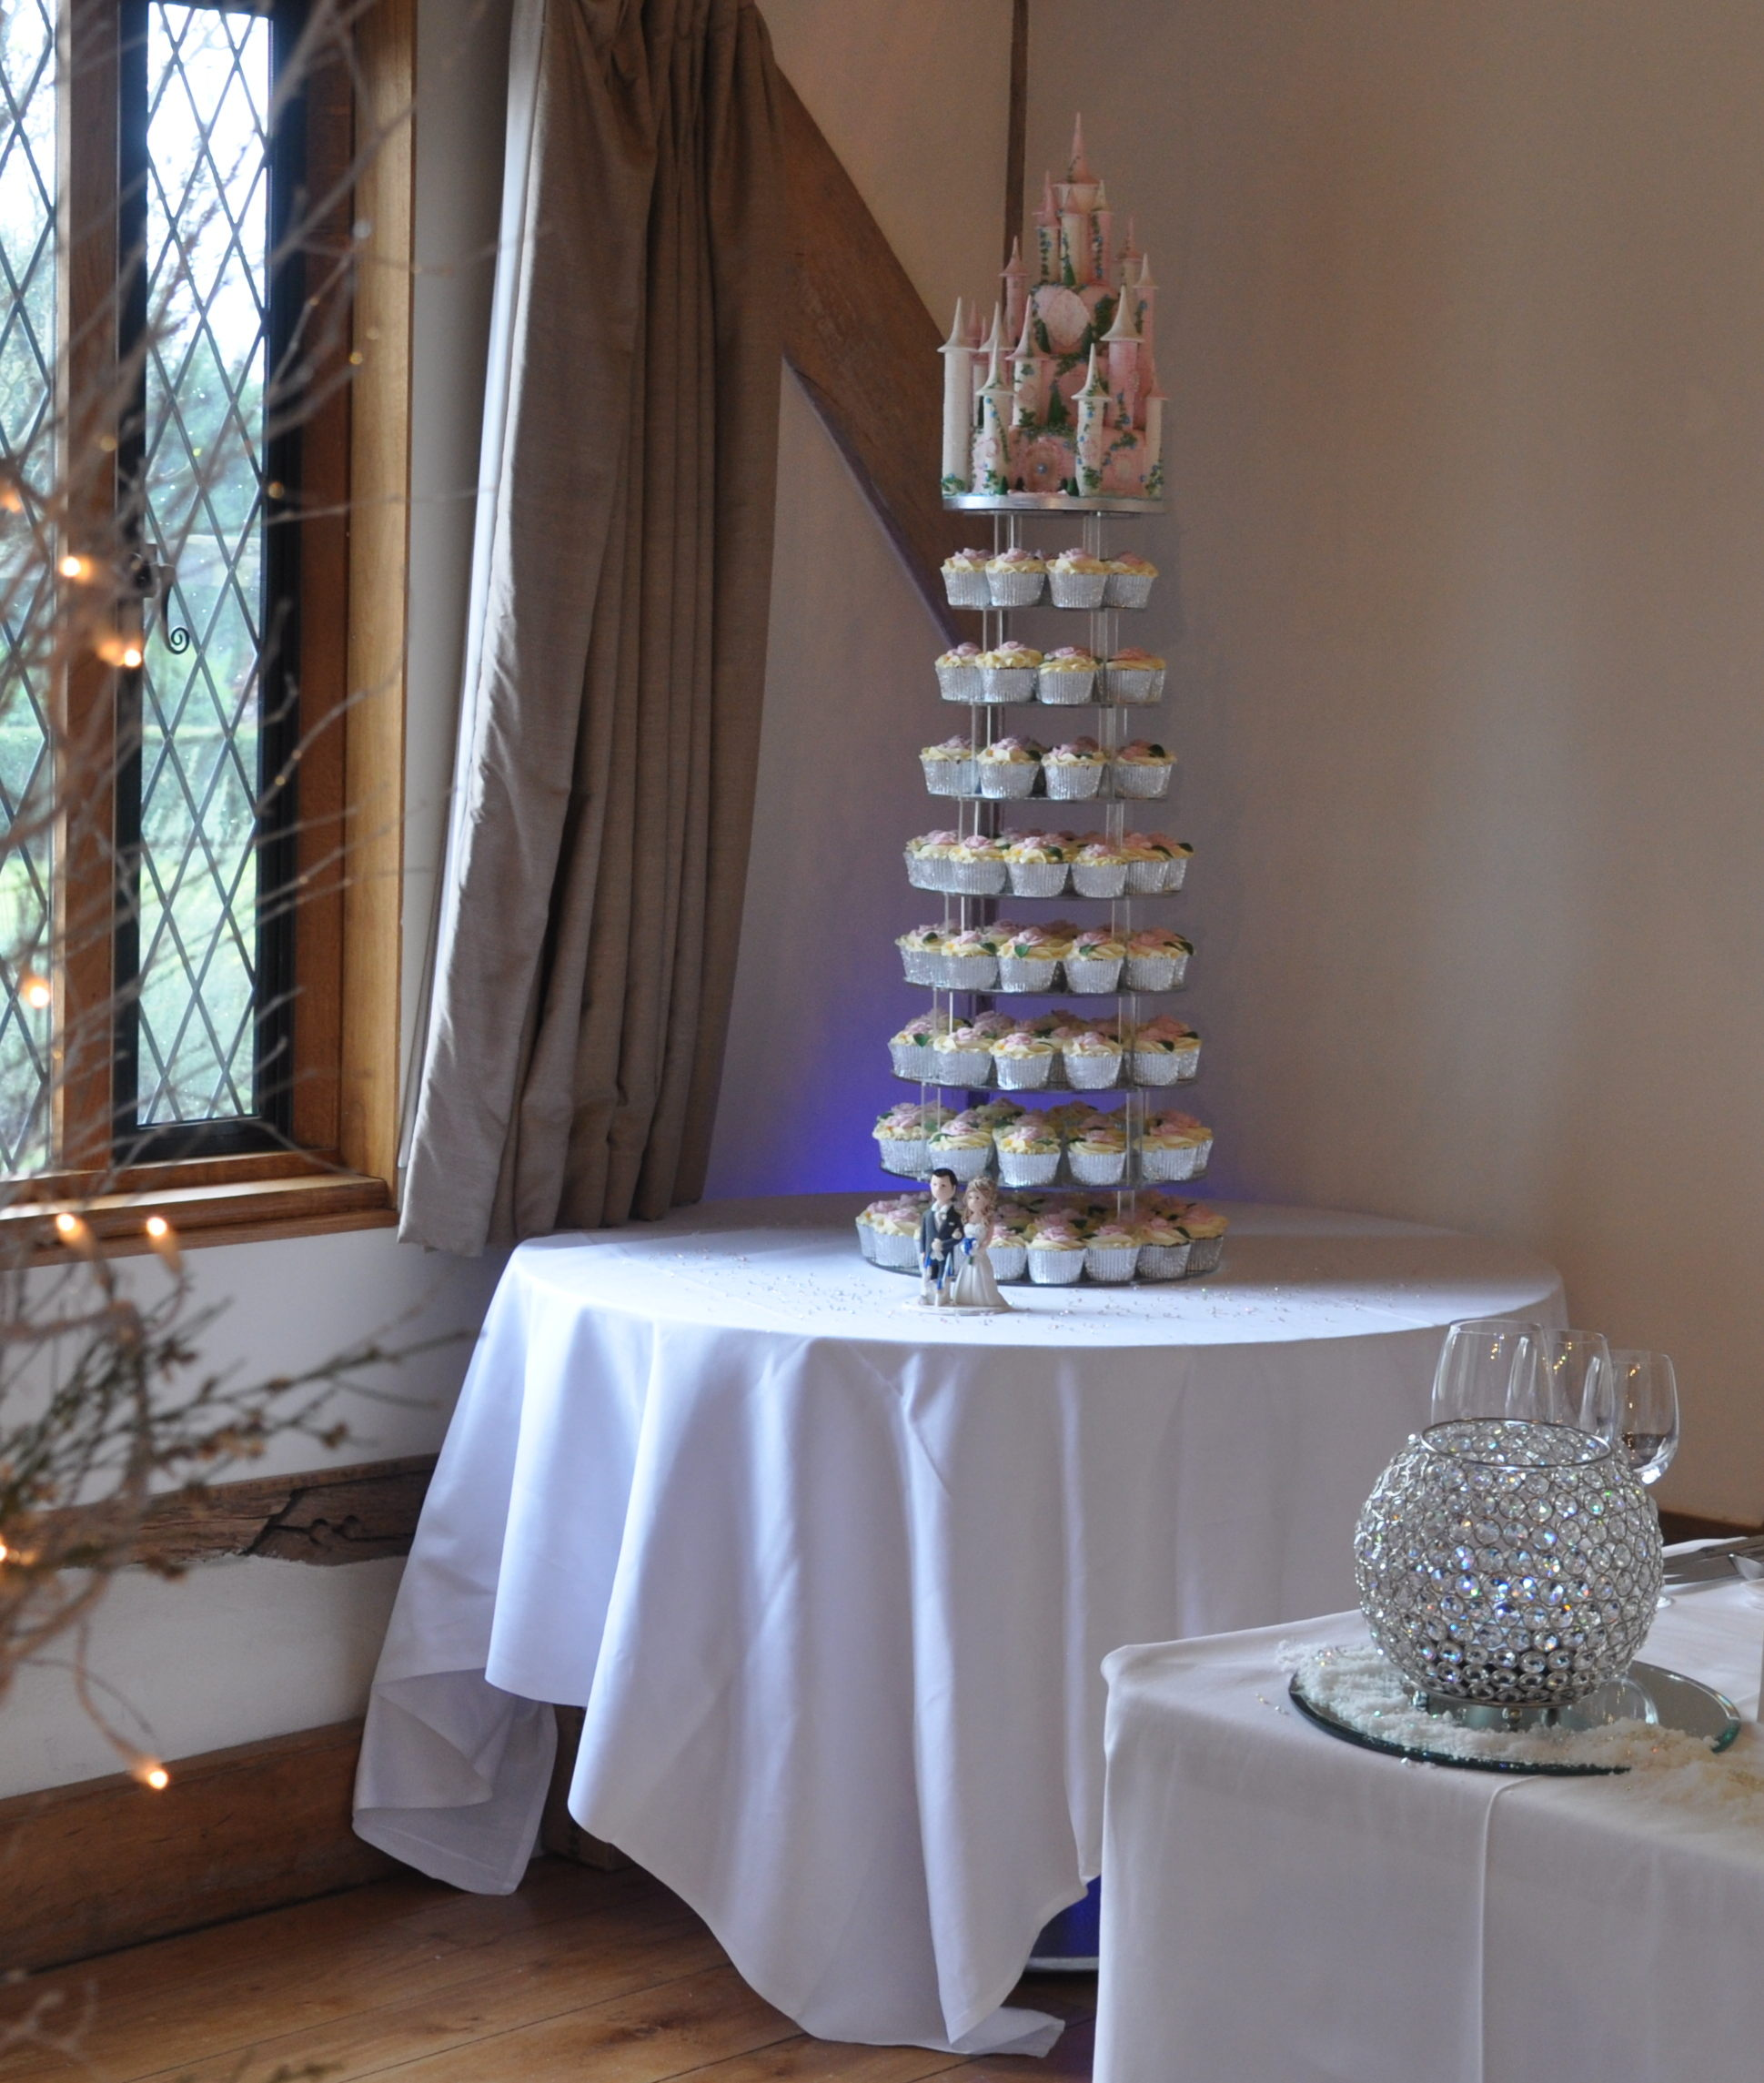 A fairy tale - A wonderful wedding cake cupcake tower, topped with an intricate fairy tale castle cake topper, complimenting Emma's colours. Each of the 126 cupcakes is individually made and decorated with ivory rose swirls and finished with a hand made rose and leaf. Shown on our mirror stand, this cake is truly stunning and so pretty.